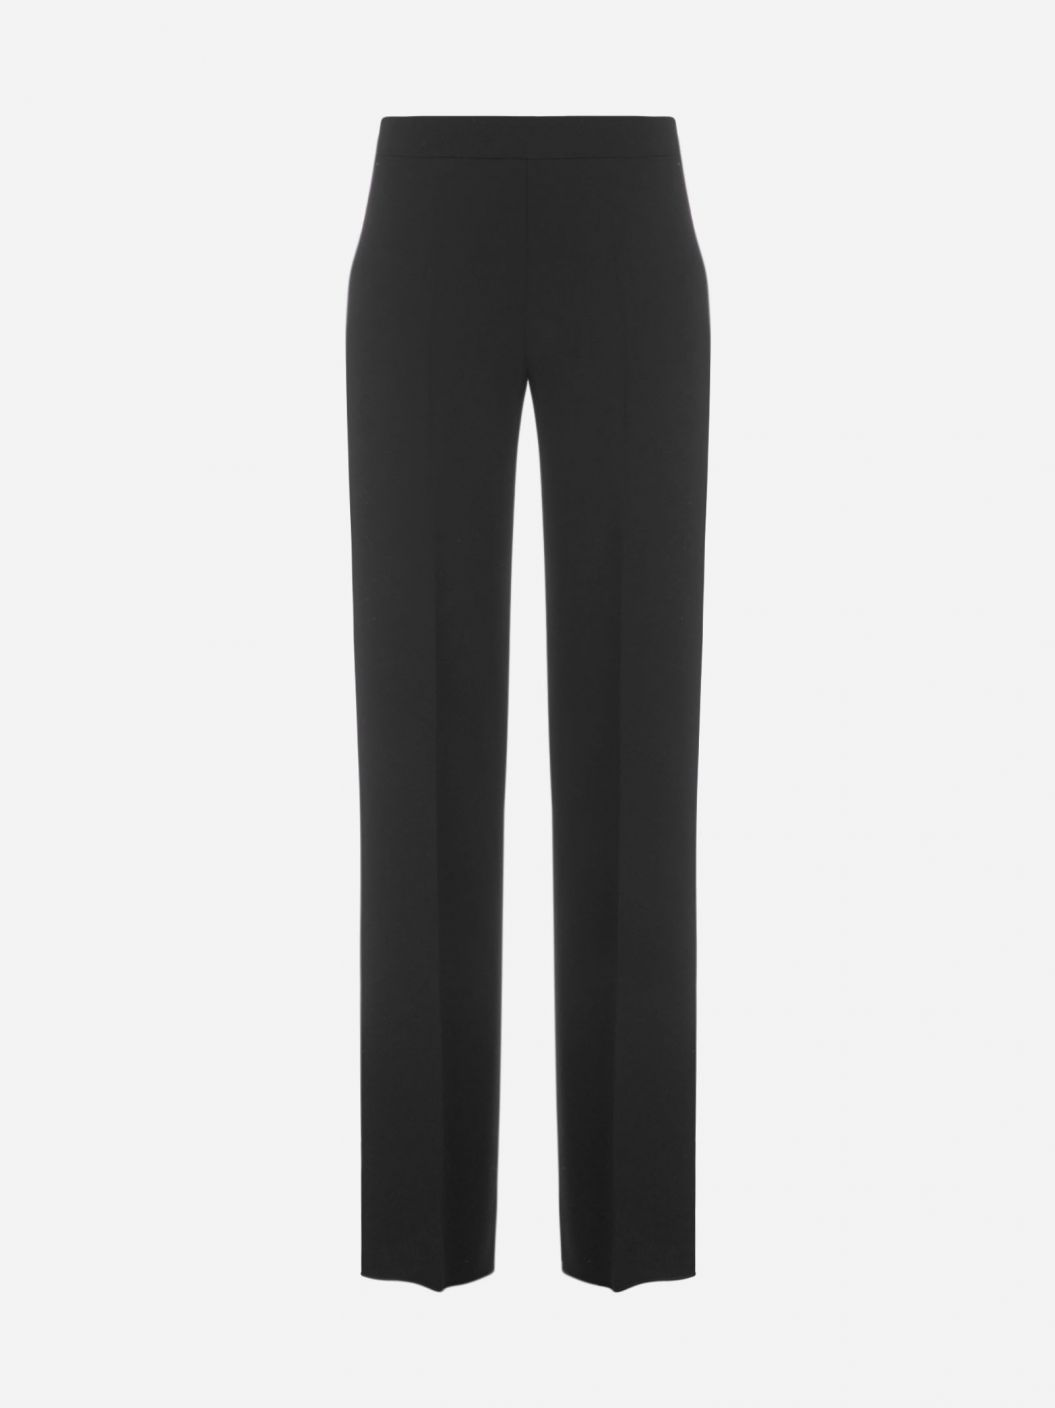 Tundra cady trousers